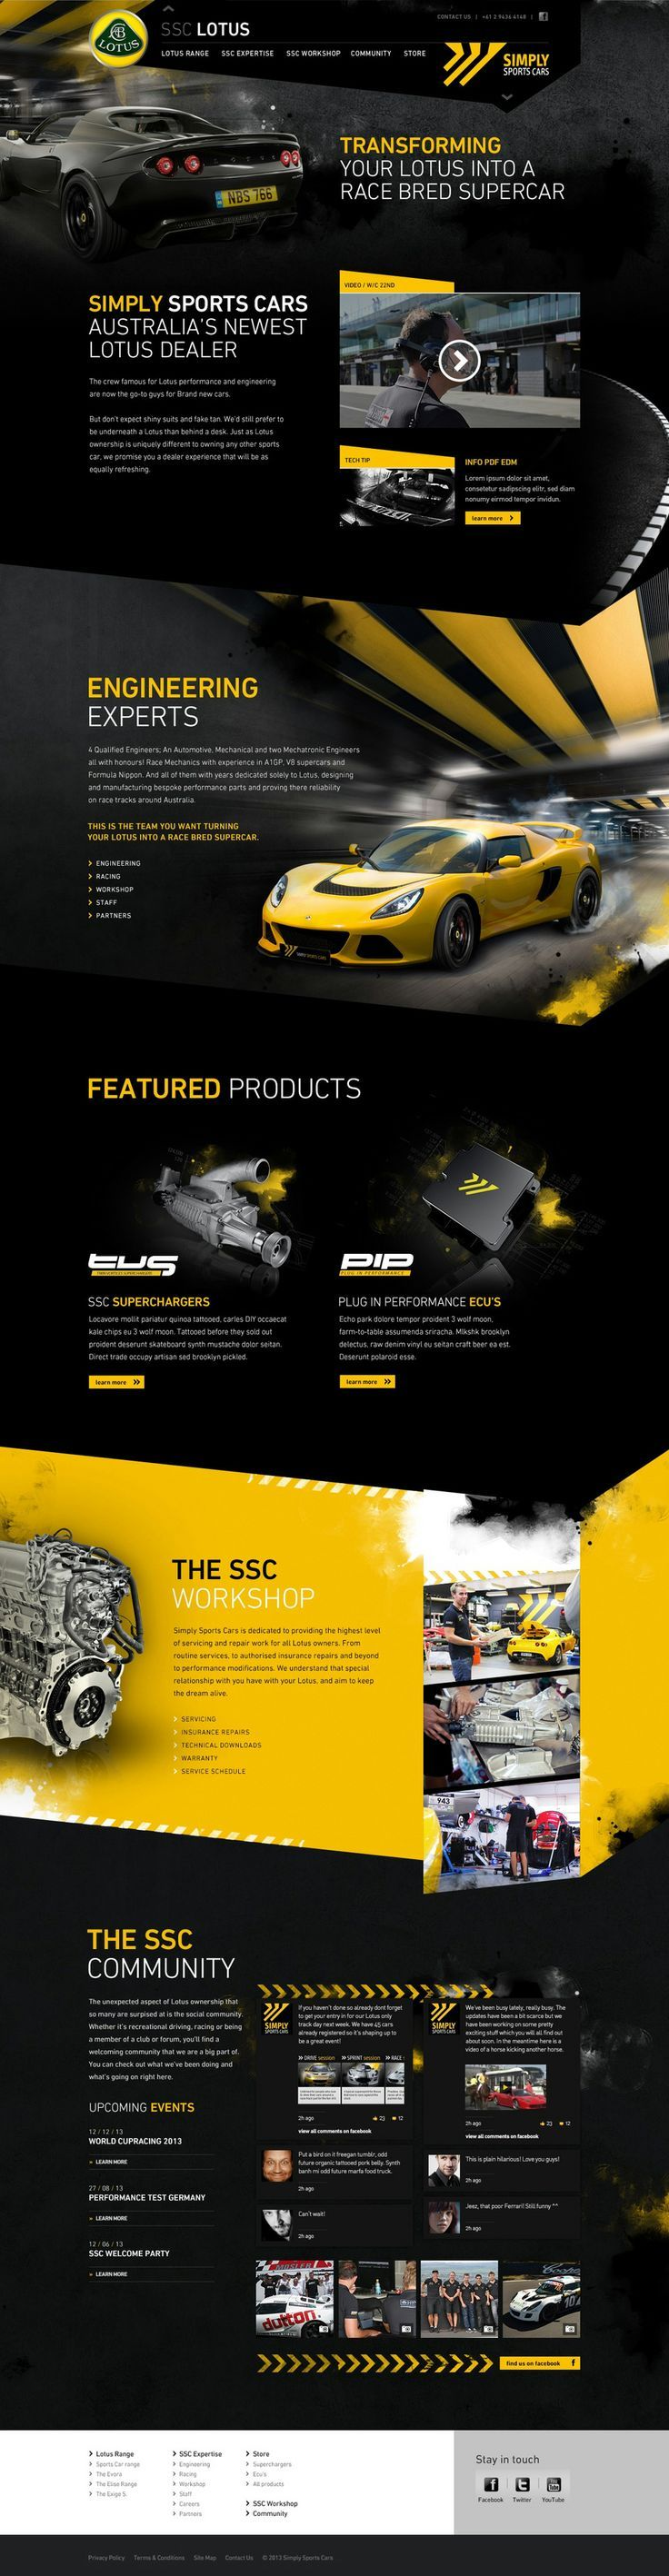 SSC LOTUS. Simply Sports Cars.. If you like UX, design, or design thinking, check out theuxblog.com